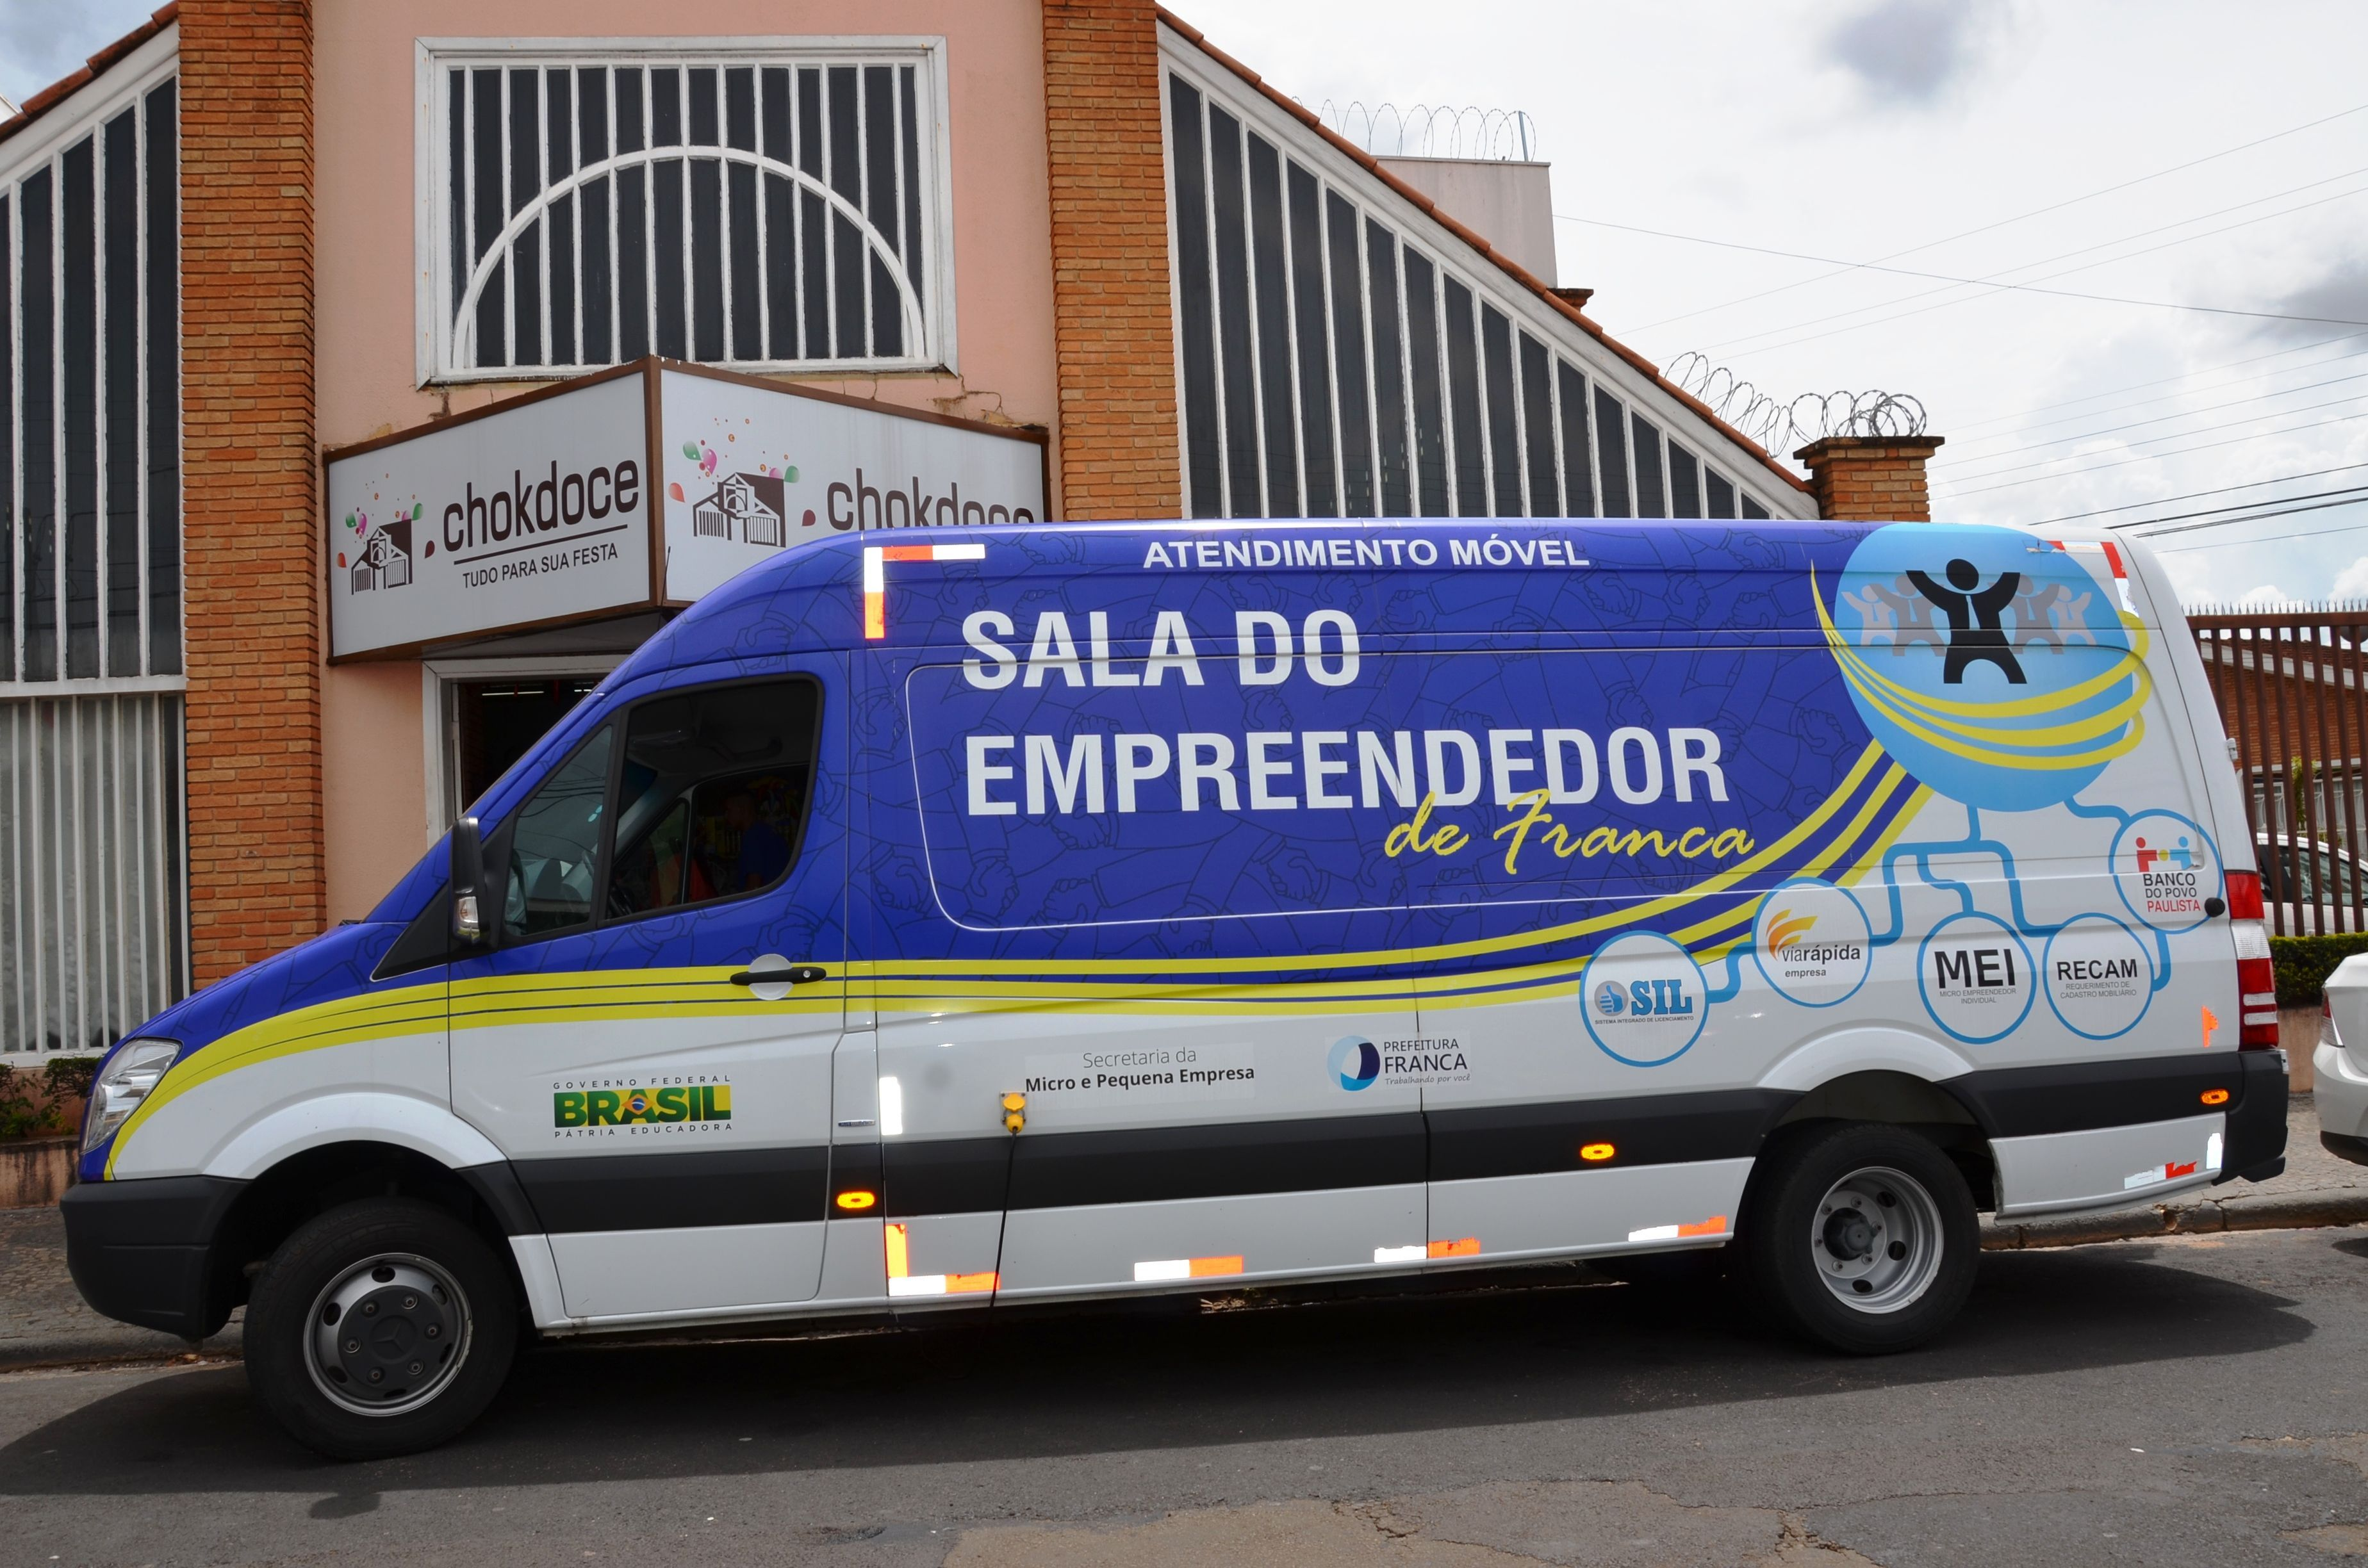 saladoempreendedor